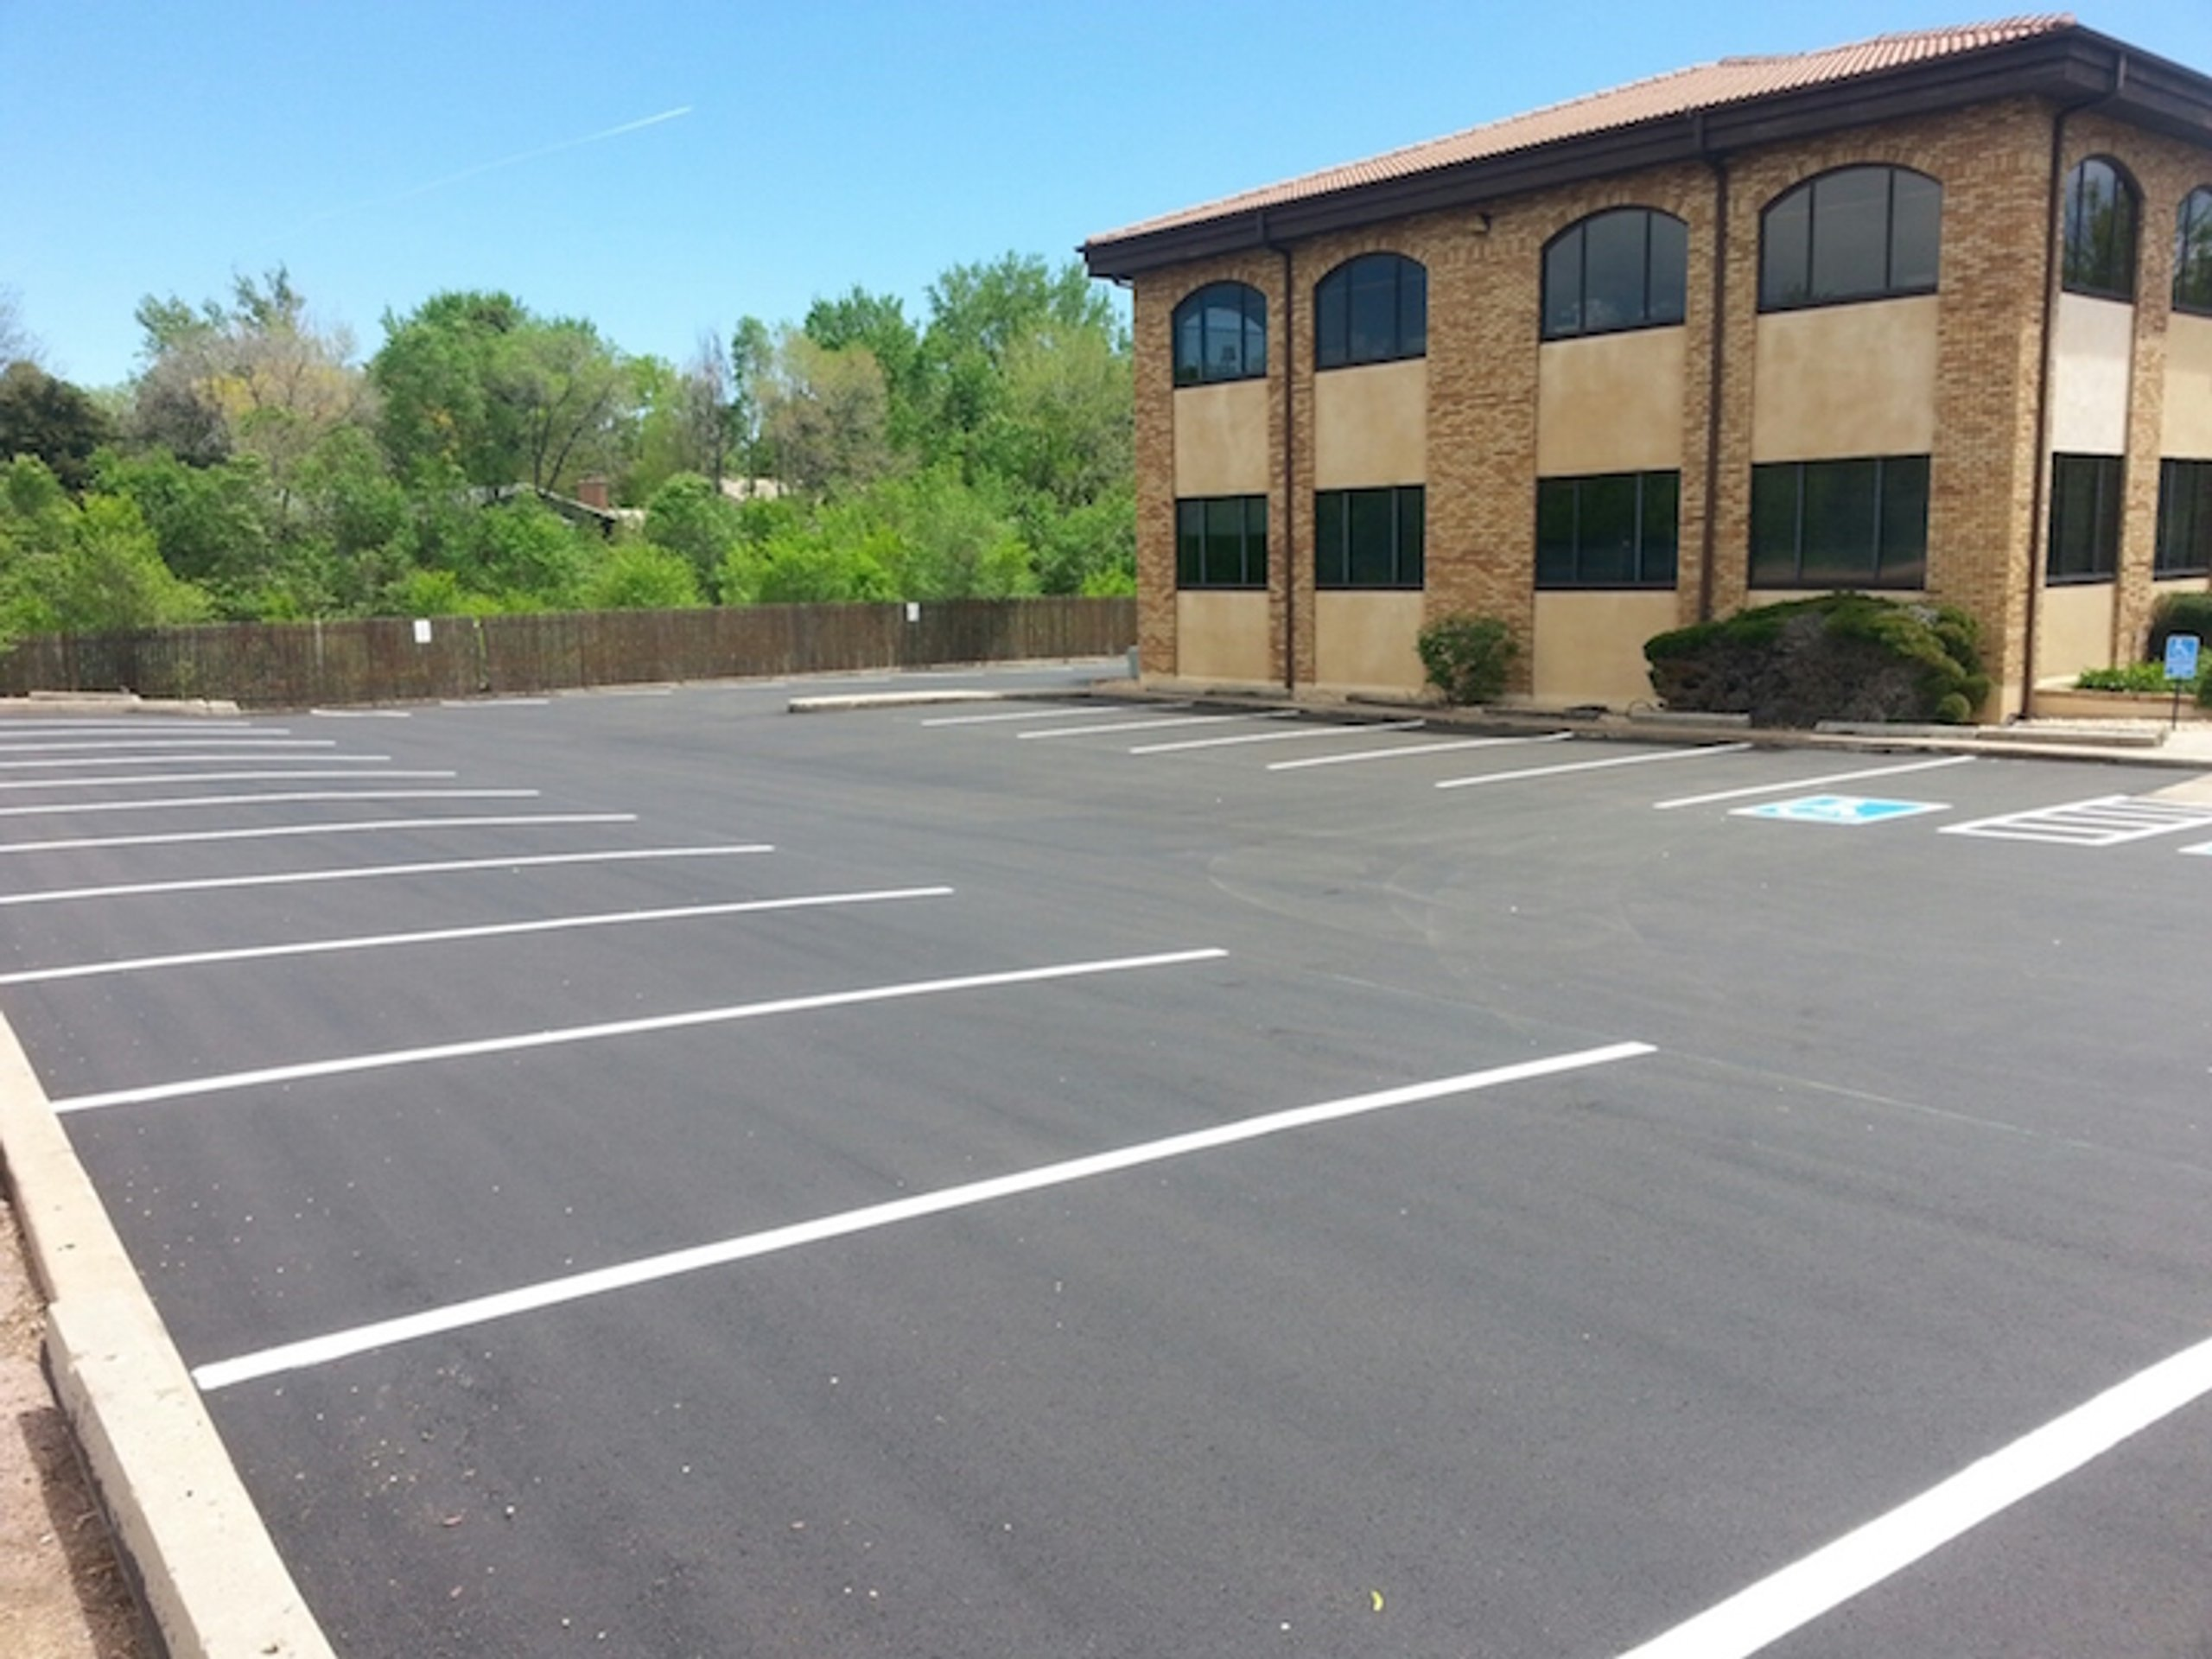 20x10 Parking Lot self storage unit